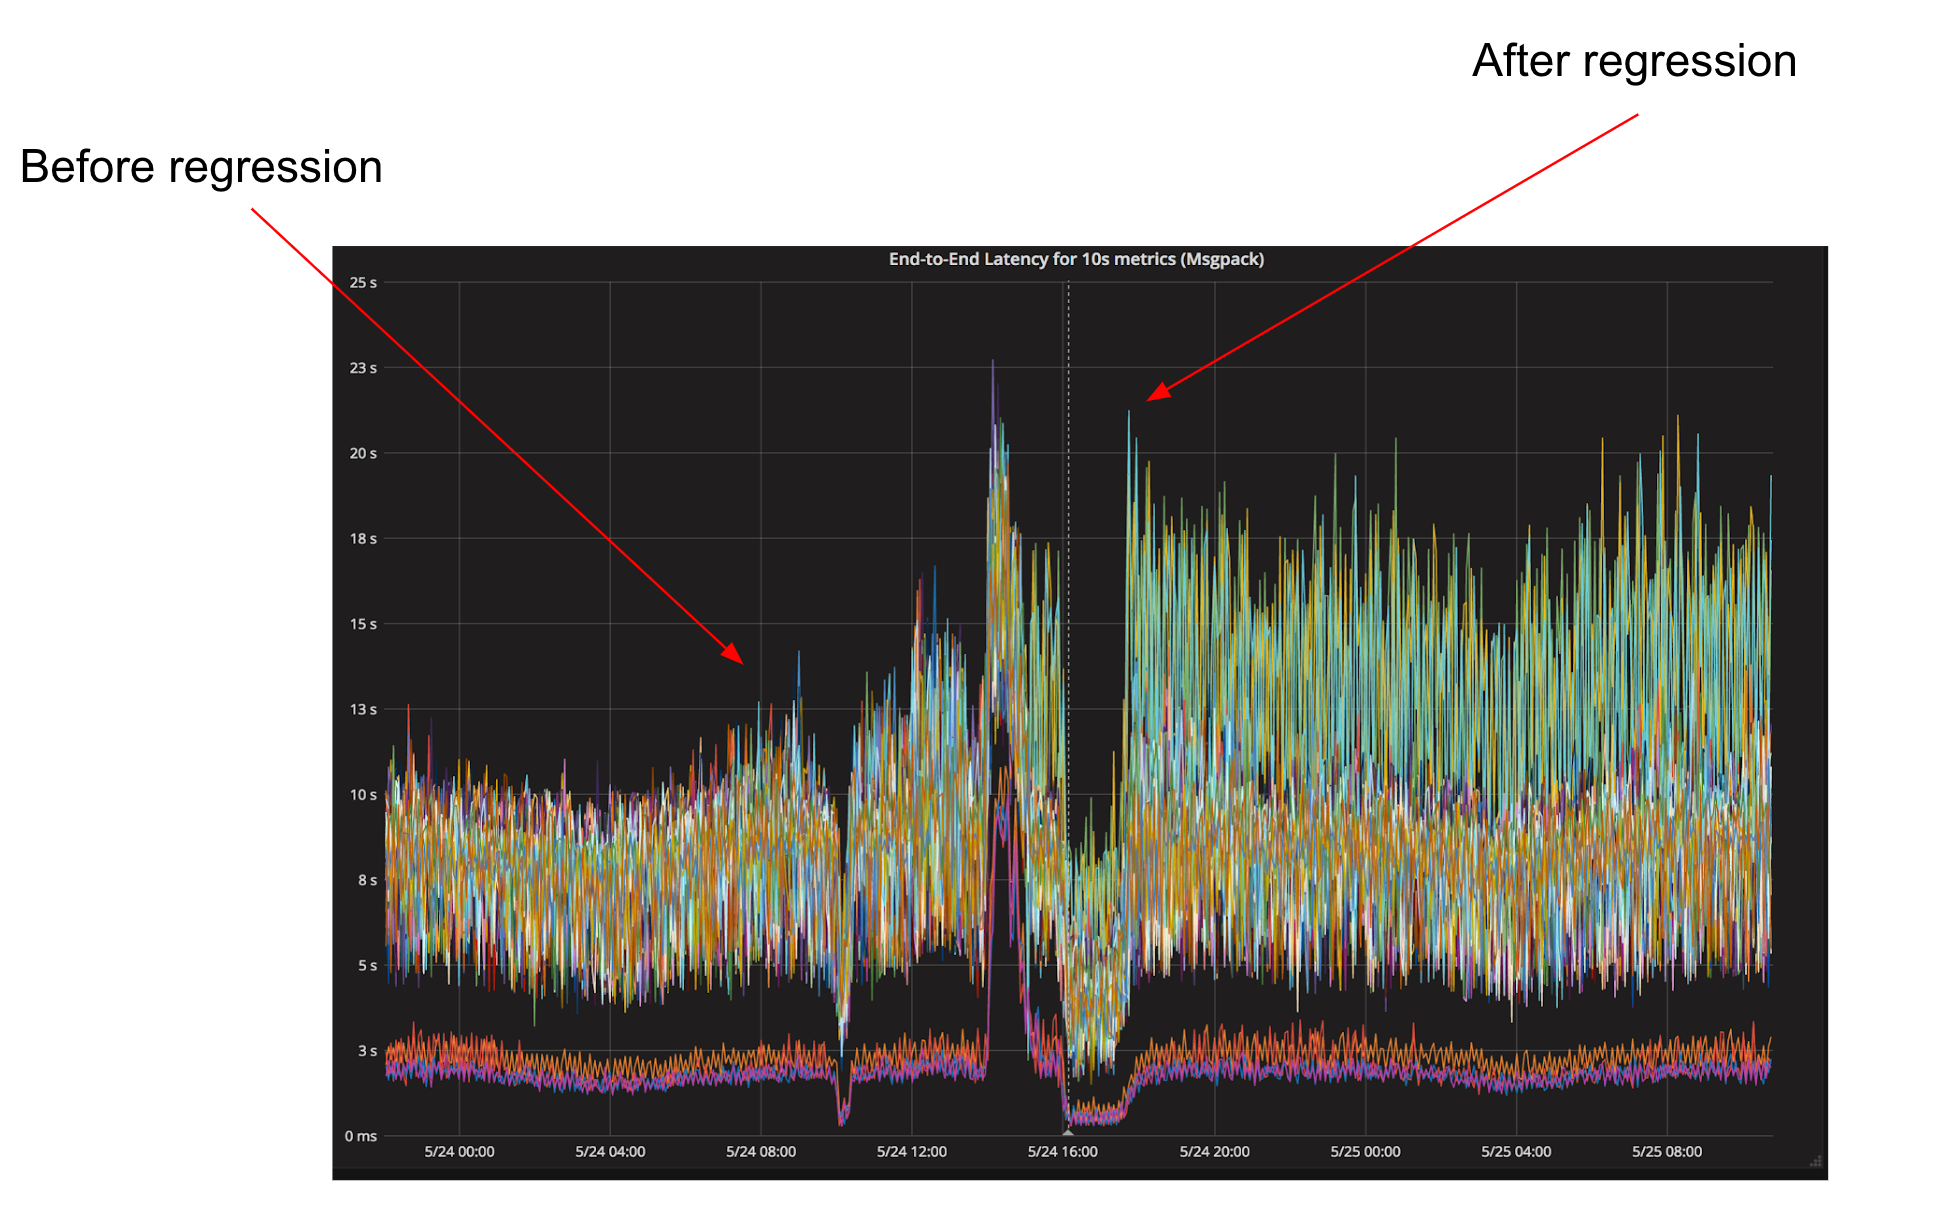 hight resolution of figure 1 the arrow on the left shows our typical end to end latency hovering around 10 seconds with occasional spikes the arrow on the right shows our